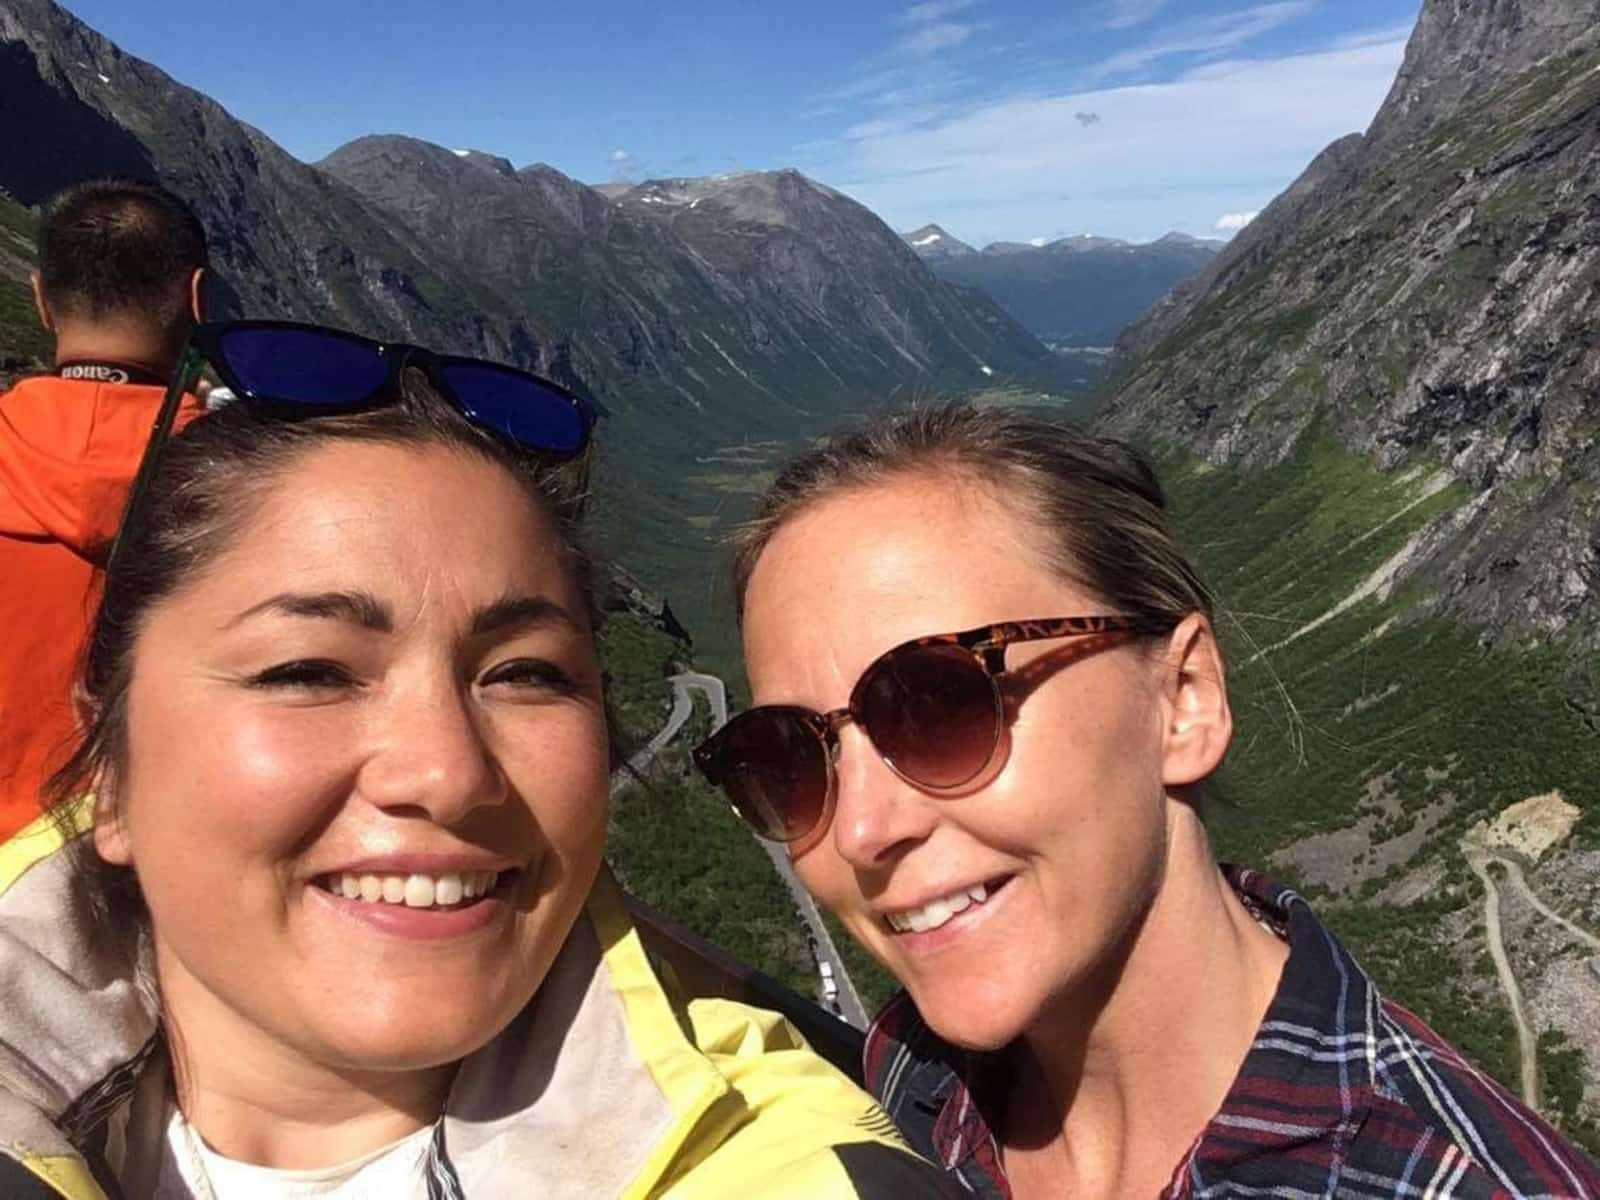 Amy & Thea from Oslo, Norway